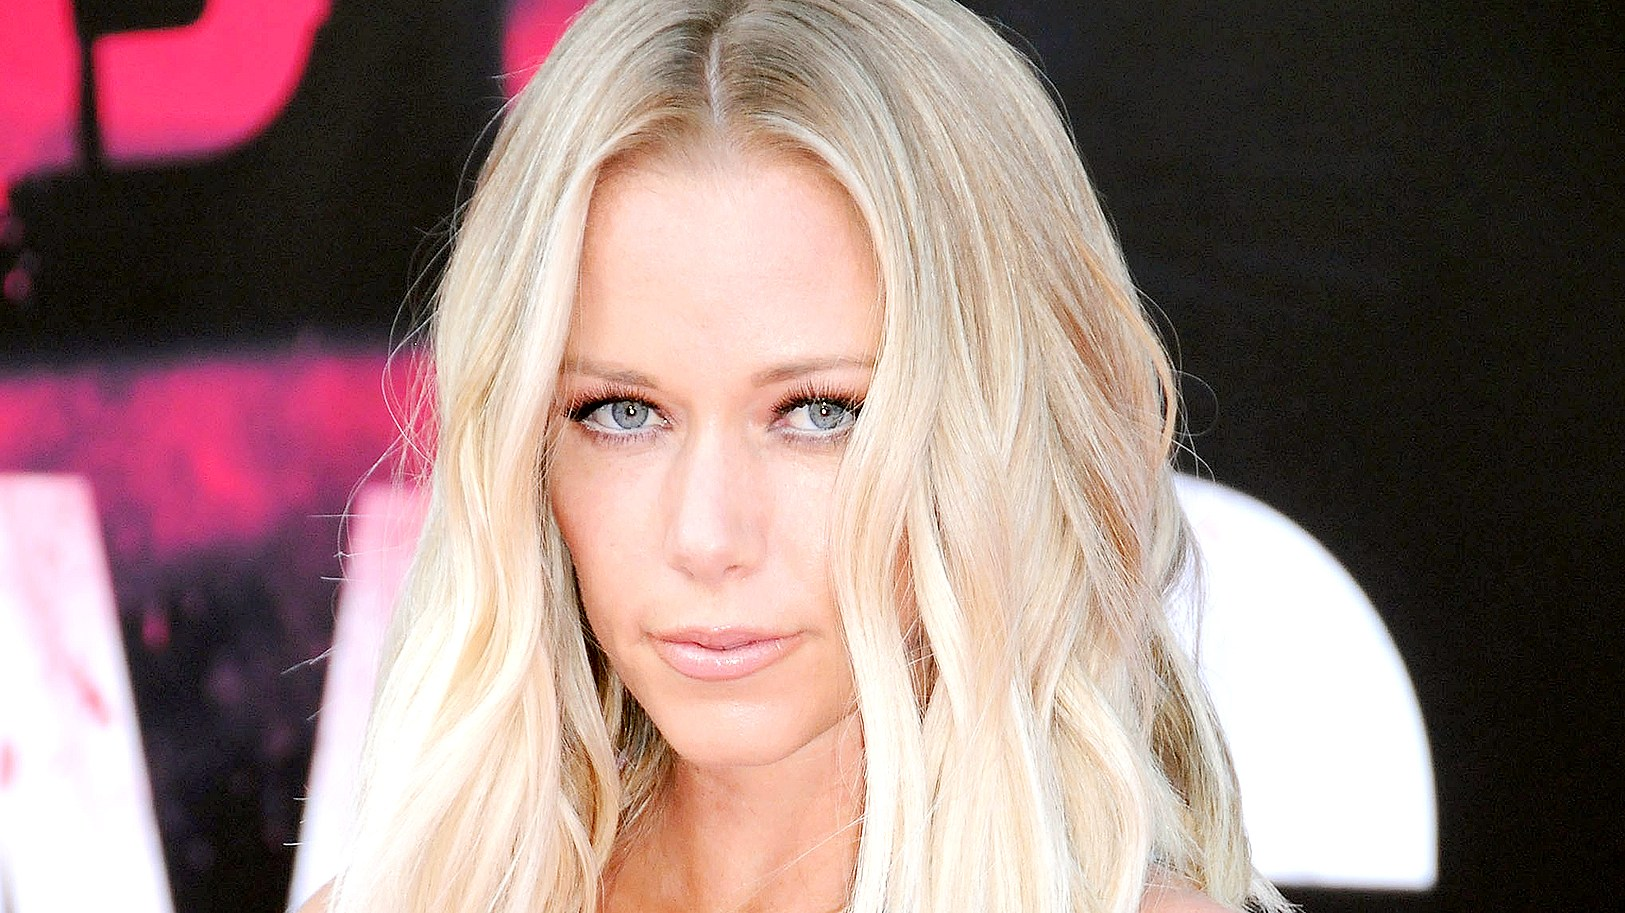 Kendra Wilkinson attends the premiere of STX Entertainment's' 'Bad Moms' at Mann Village Theatre on July 26, 2016 in Westwood, California.